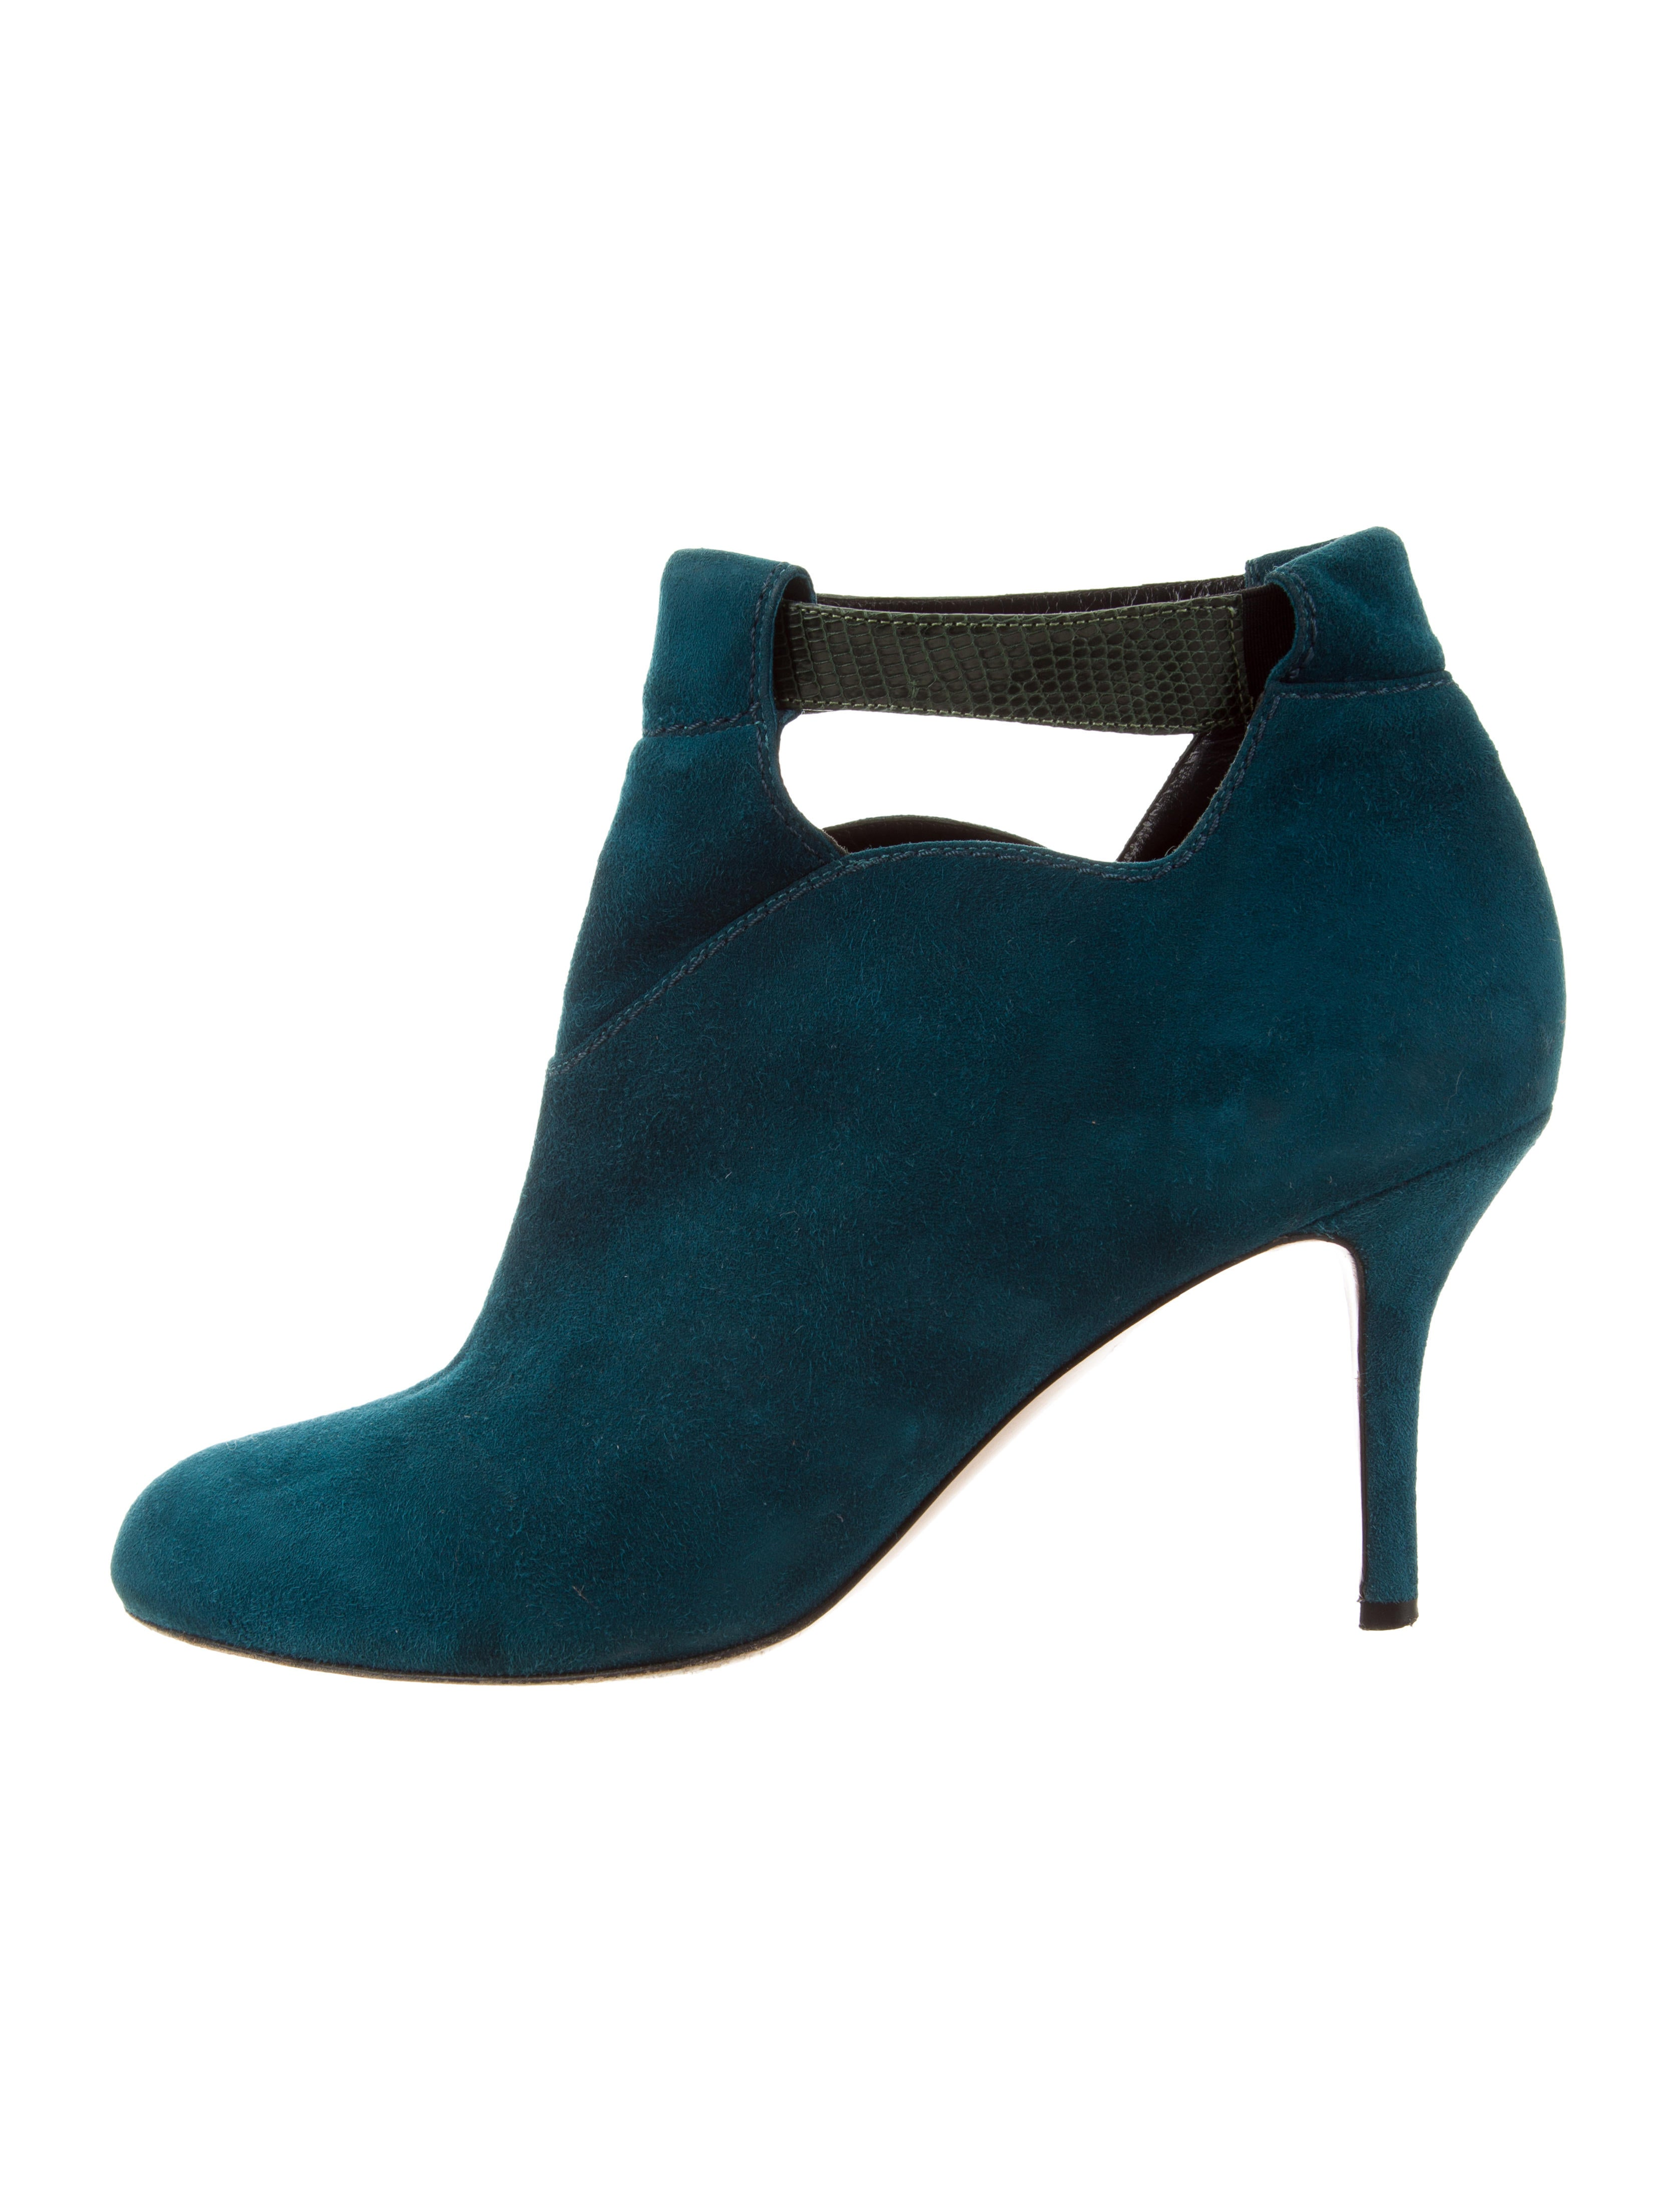 Sarah Flint Suede Round-Toe Booties fast delivery cheap online sSE4zH